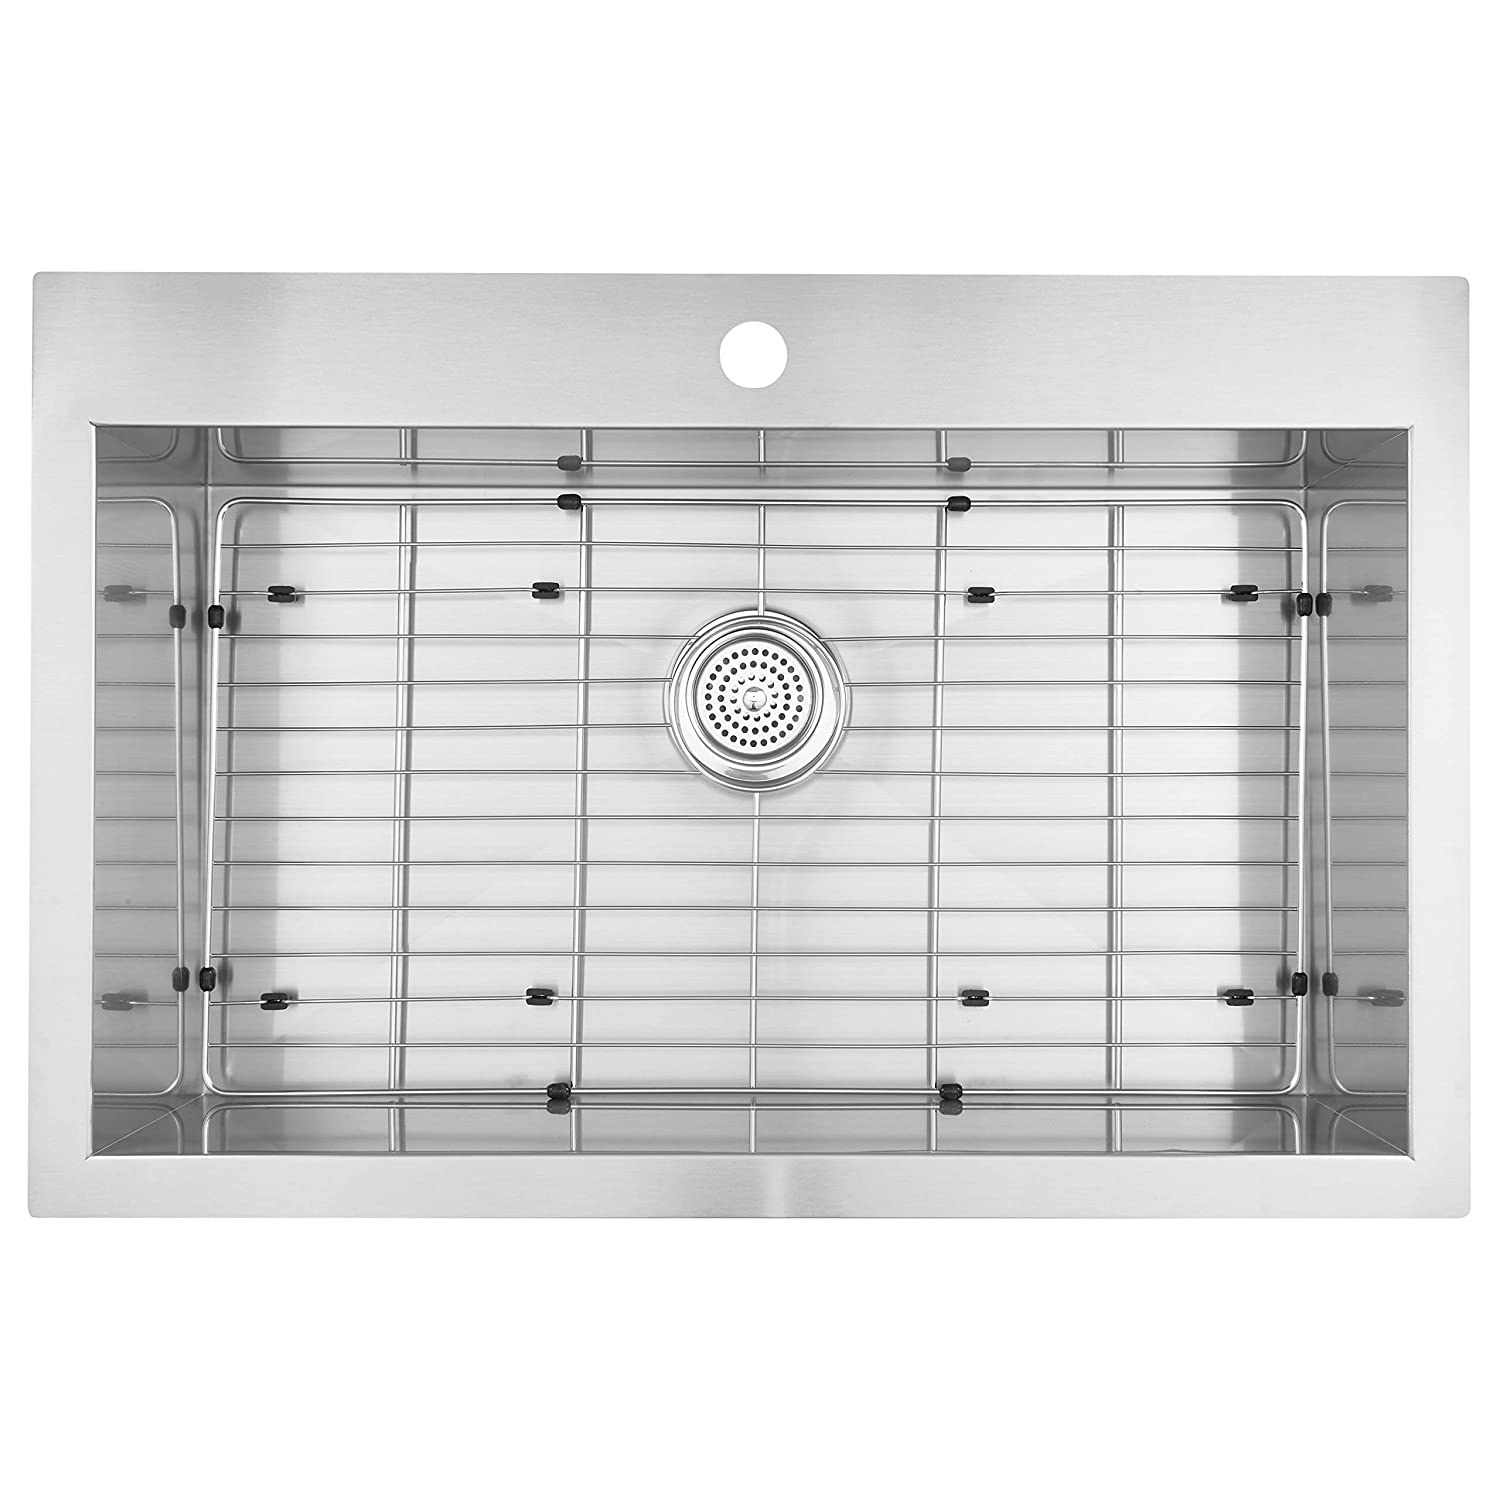 "Artika SS3120T18-CCA 31""x20"" Single Bowl Undermount or Drop-in 18 Gauge Kitchen Sink Stainless Steel with Grids Included, 31"" x 20"", Brushed Nickel"